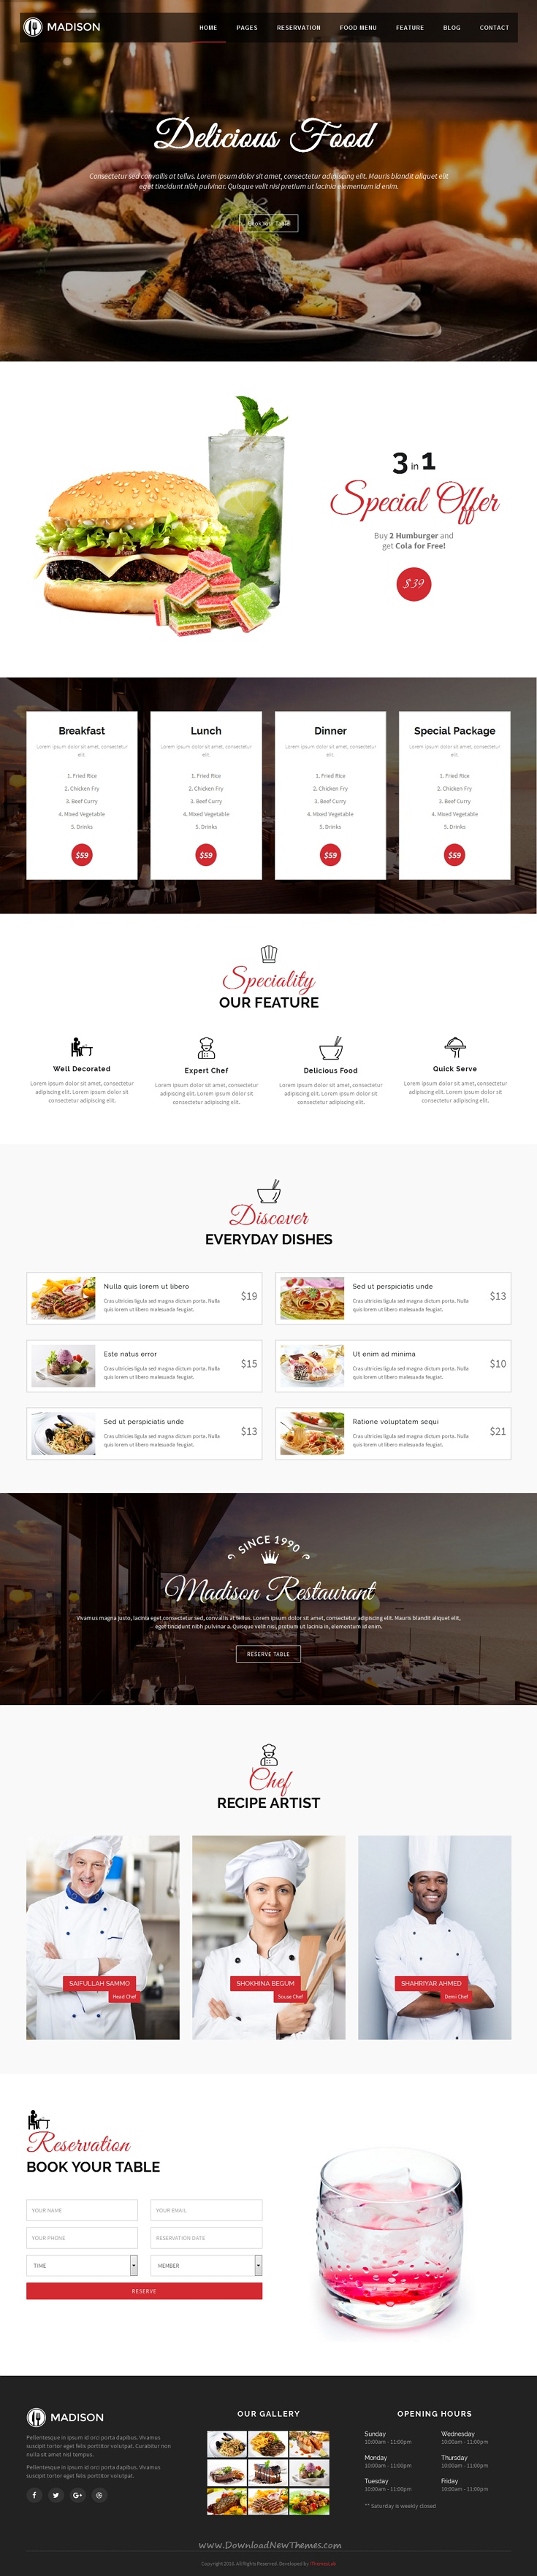 Madison - Bootstrap Restaurant Theme | Business website ...